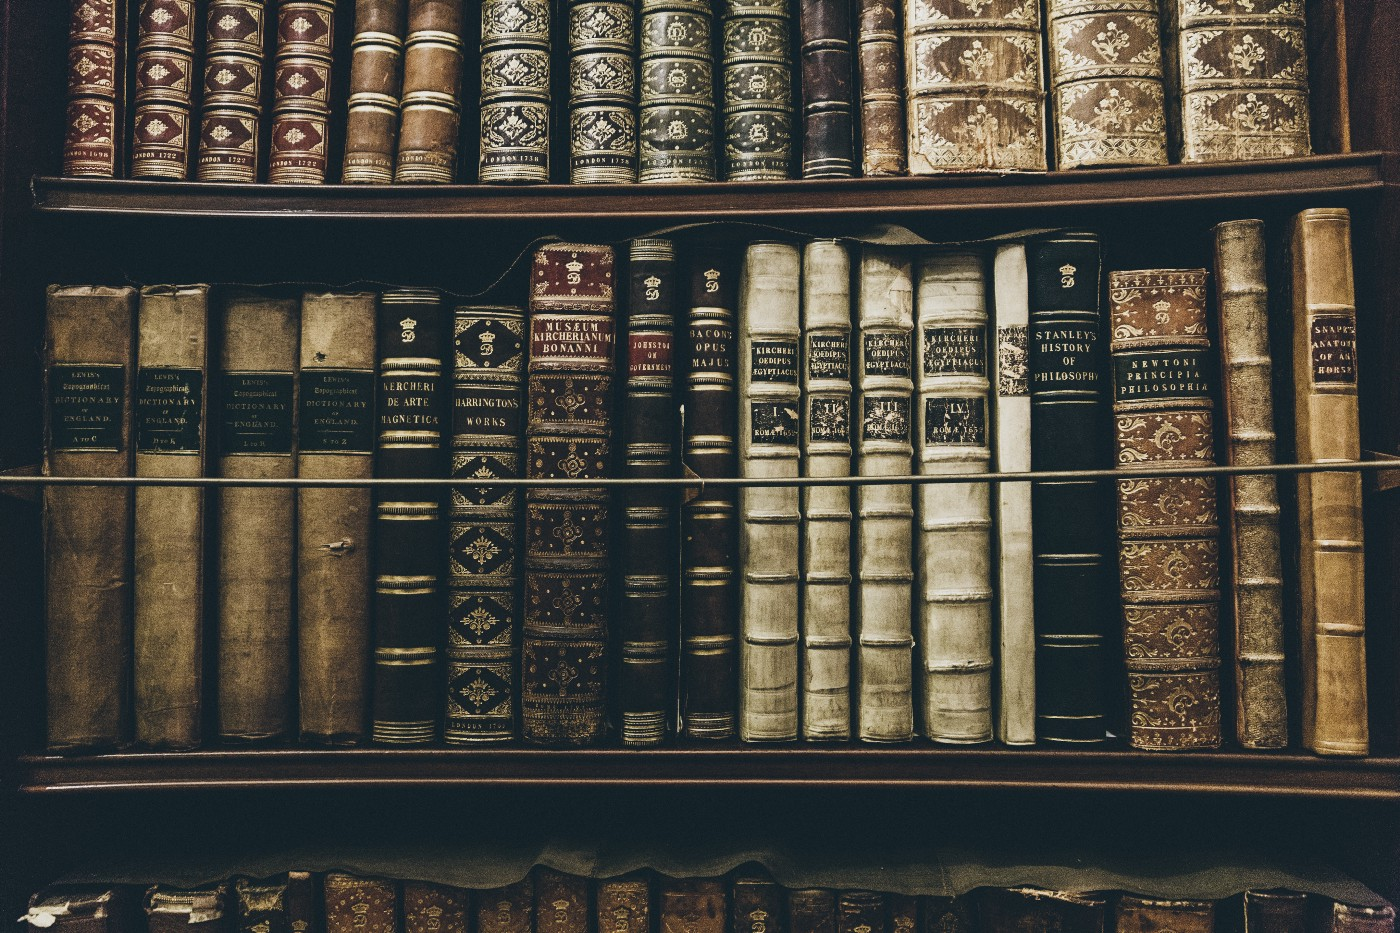 library shelves filled with rare antique books